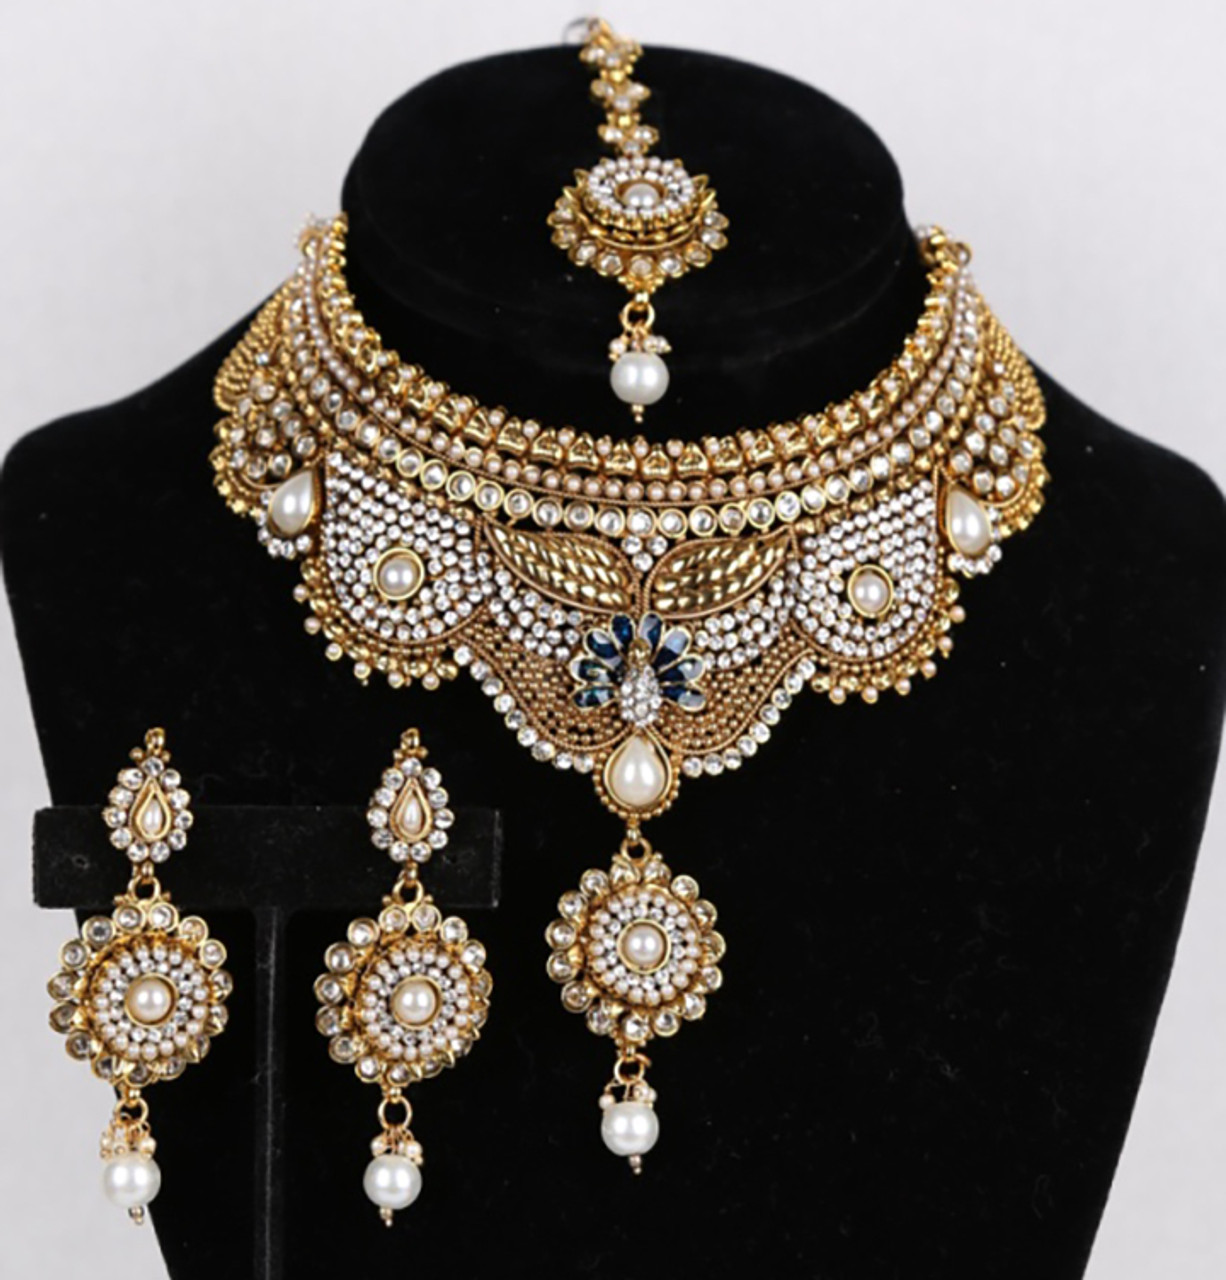 b0e02f783 Indian Bridal CZ AD Necklace Gold Silver Tone Bollywood Style ...